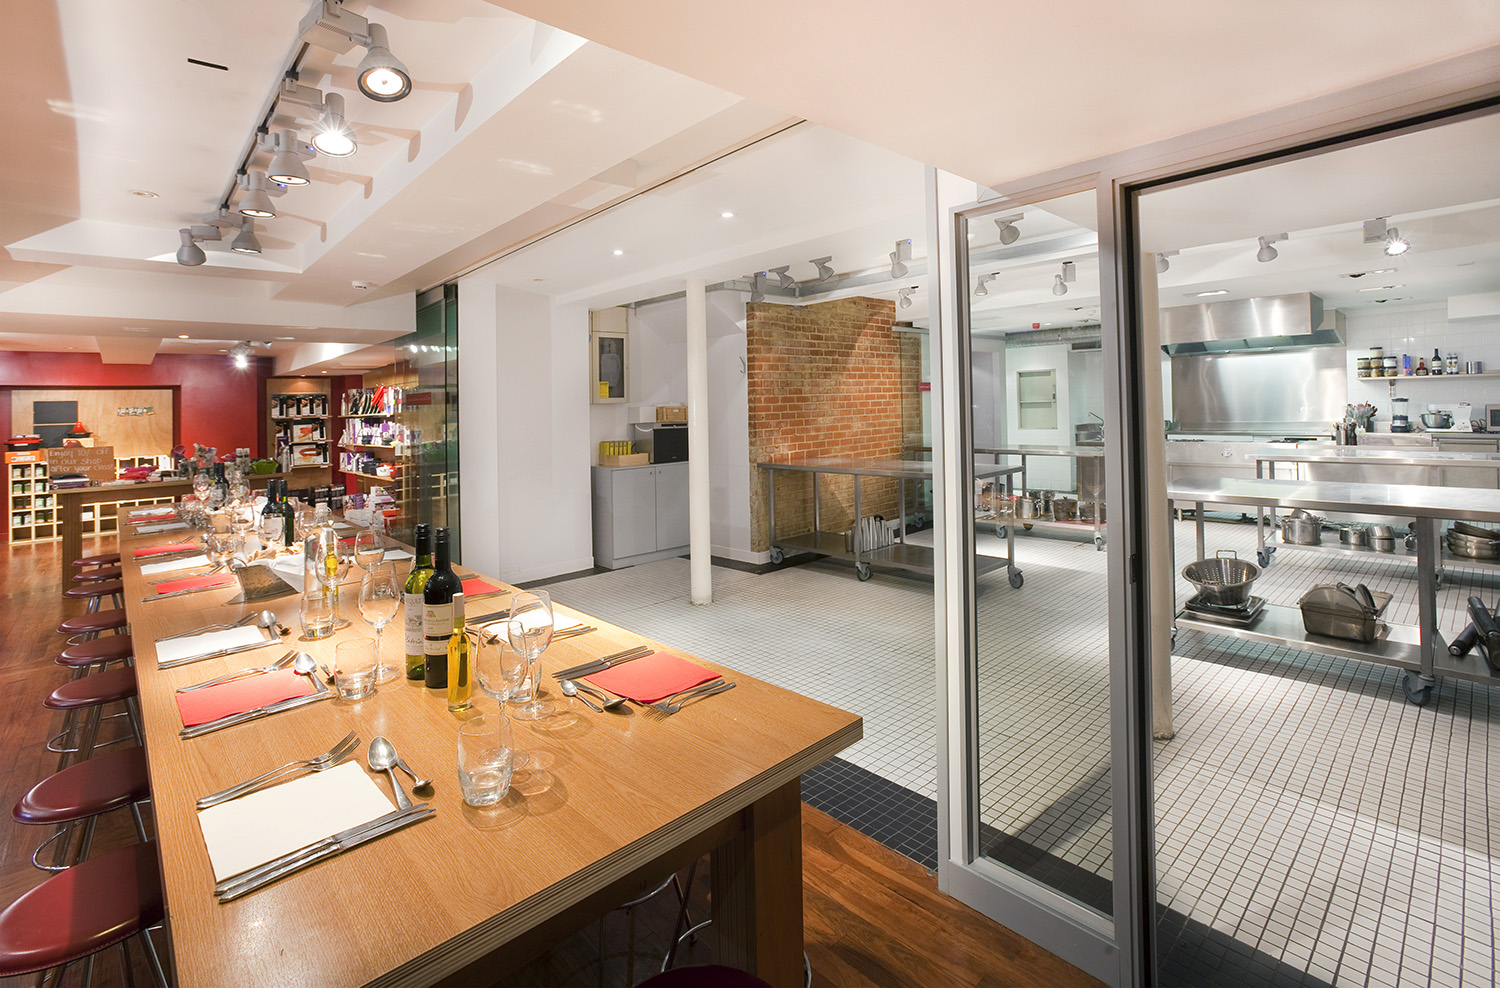 L'atelier des chefs Cookery School Oxford Circus